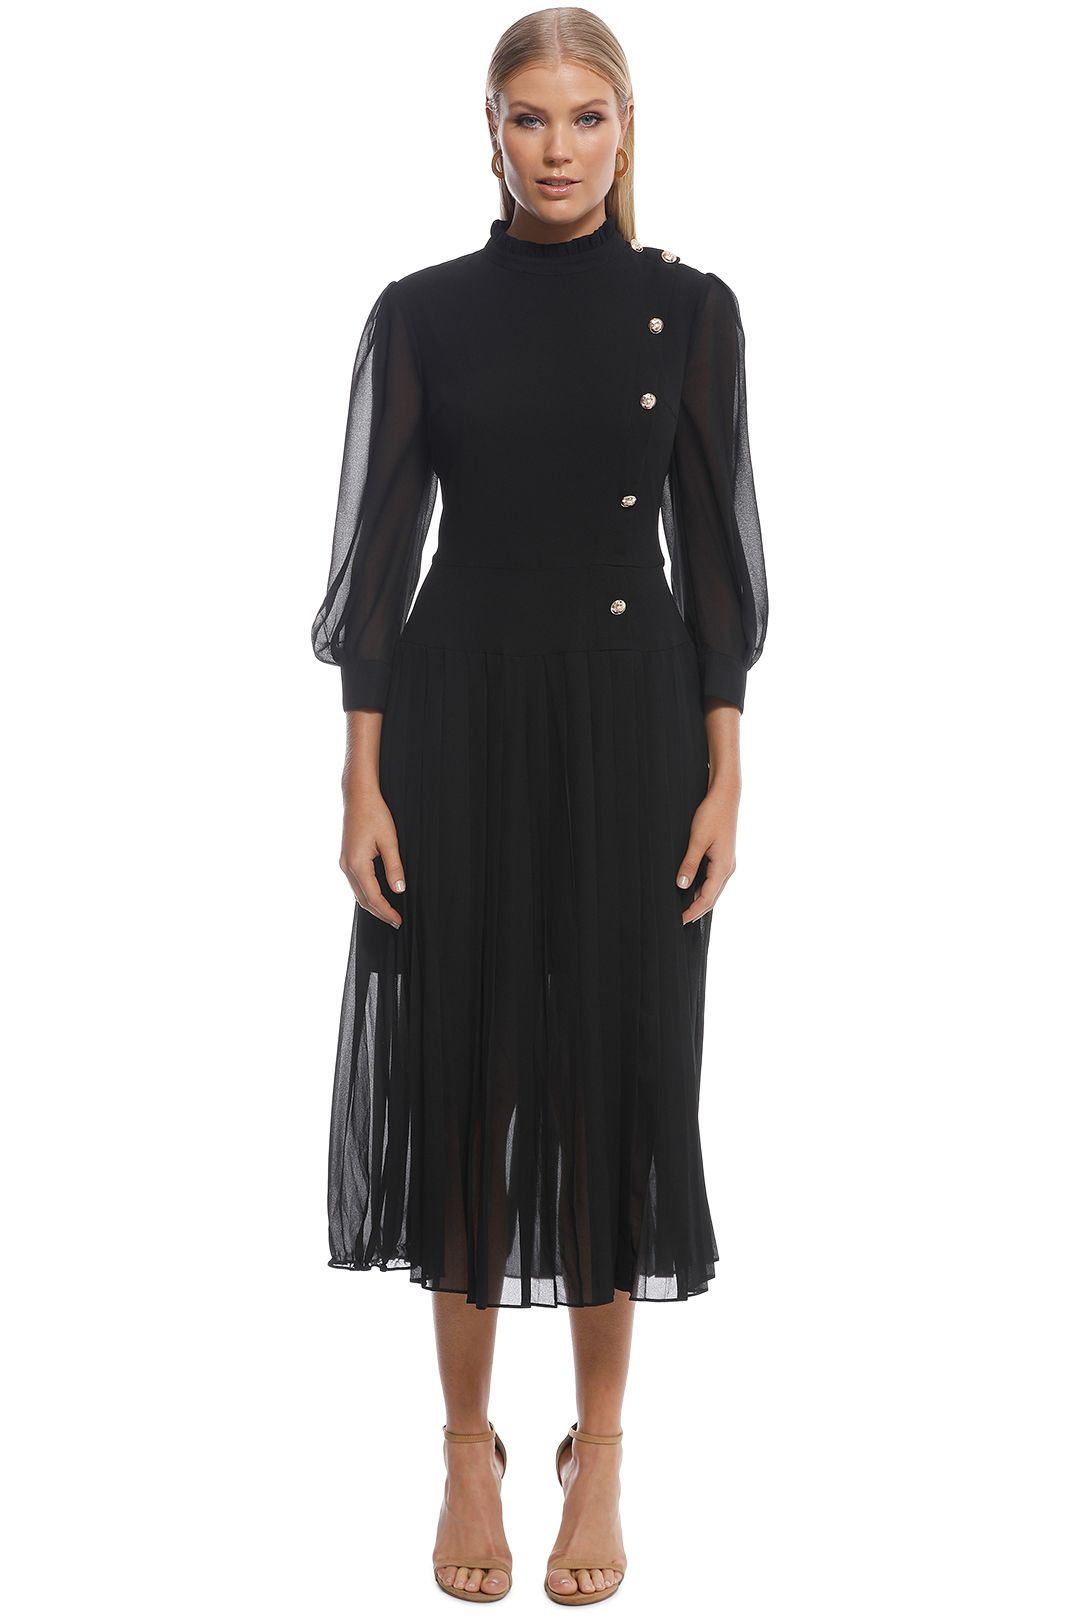 Cooper St - Is This Love Long Sleeve Midi Dress - Black - Front